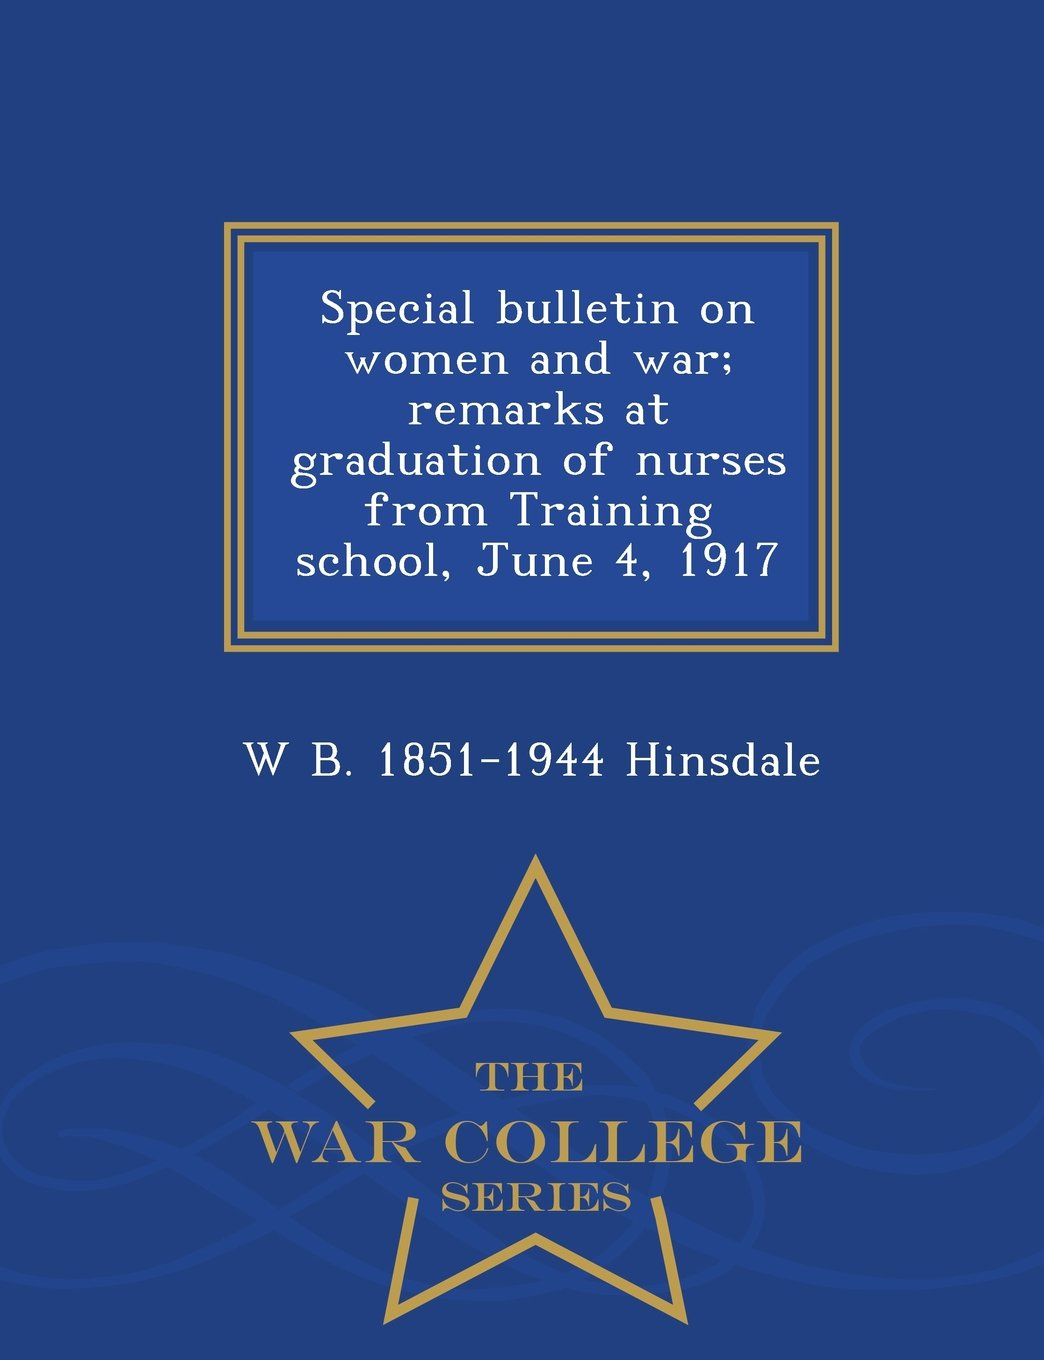 Special bulletin on women and war; remarks at graduation of nurses from Training school, June 4, 1917  - War College Series ebook